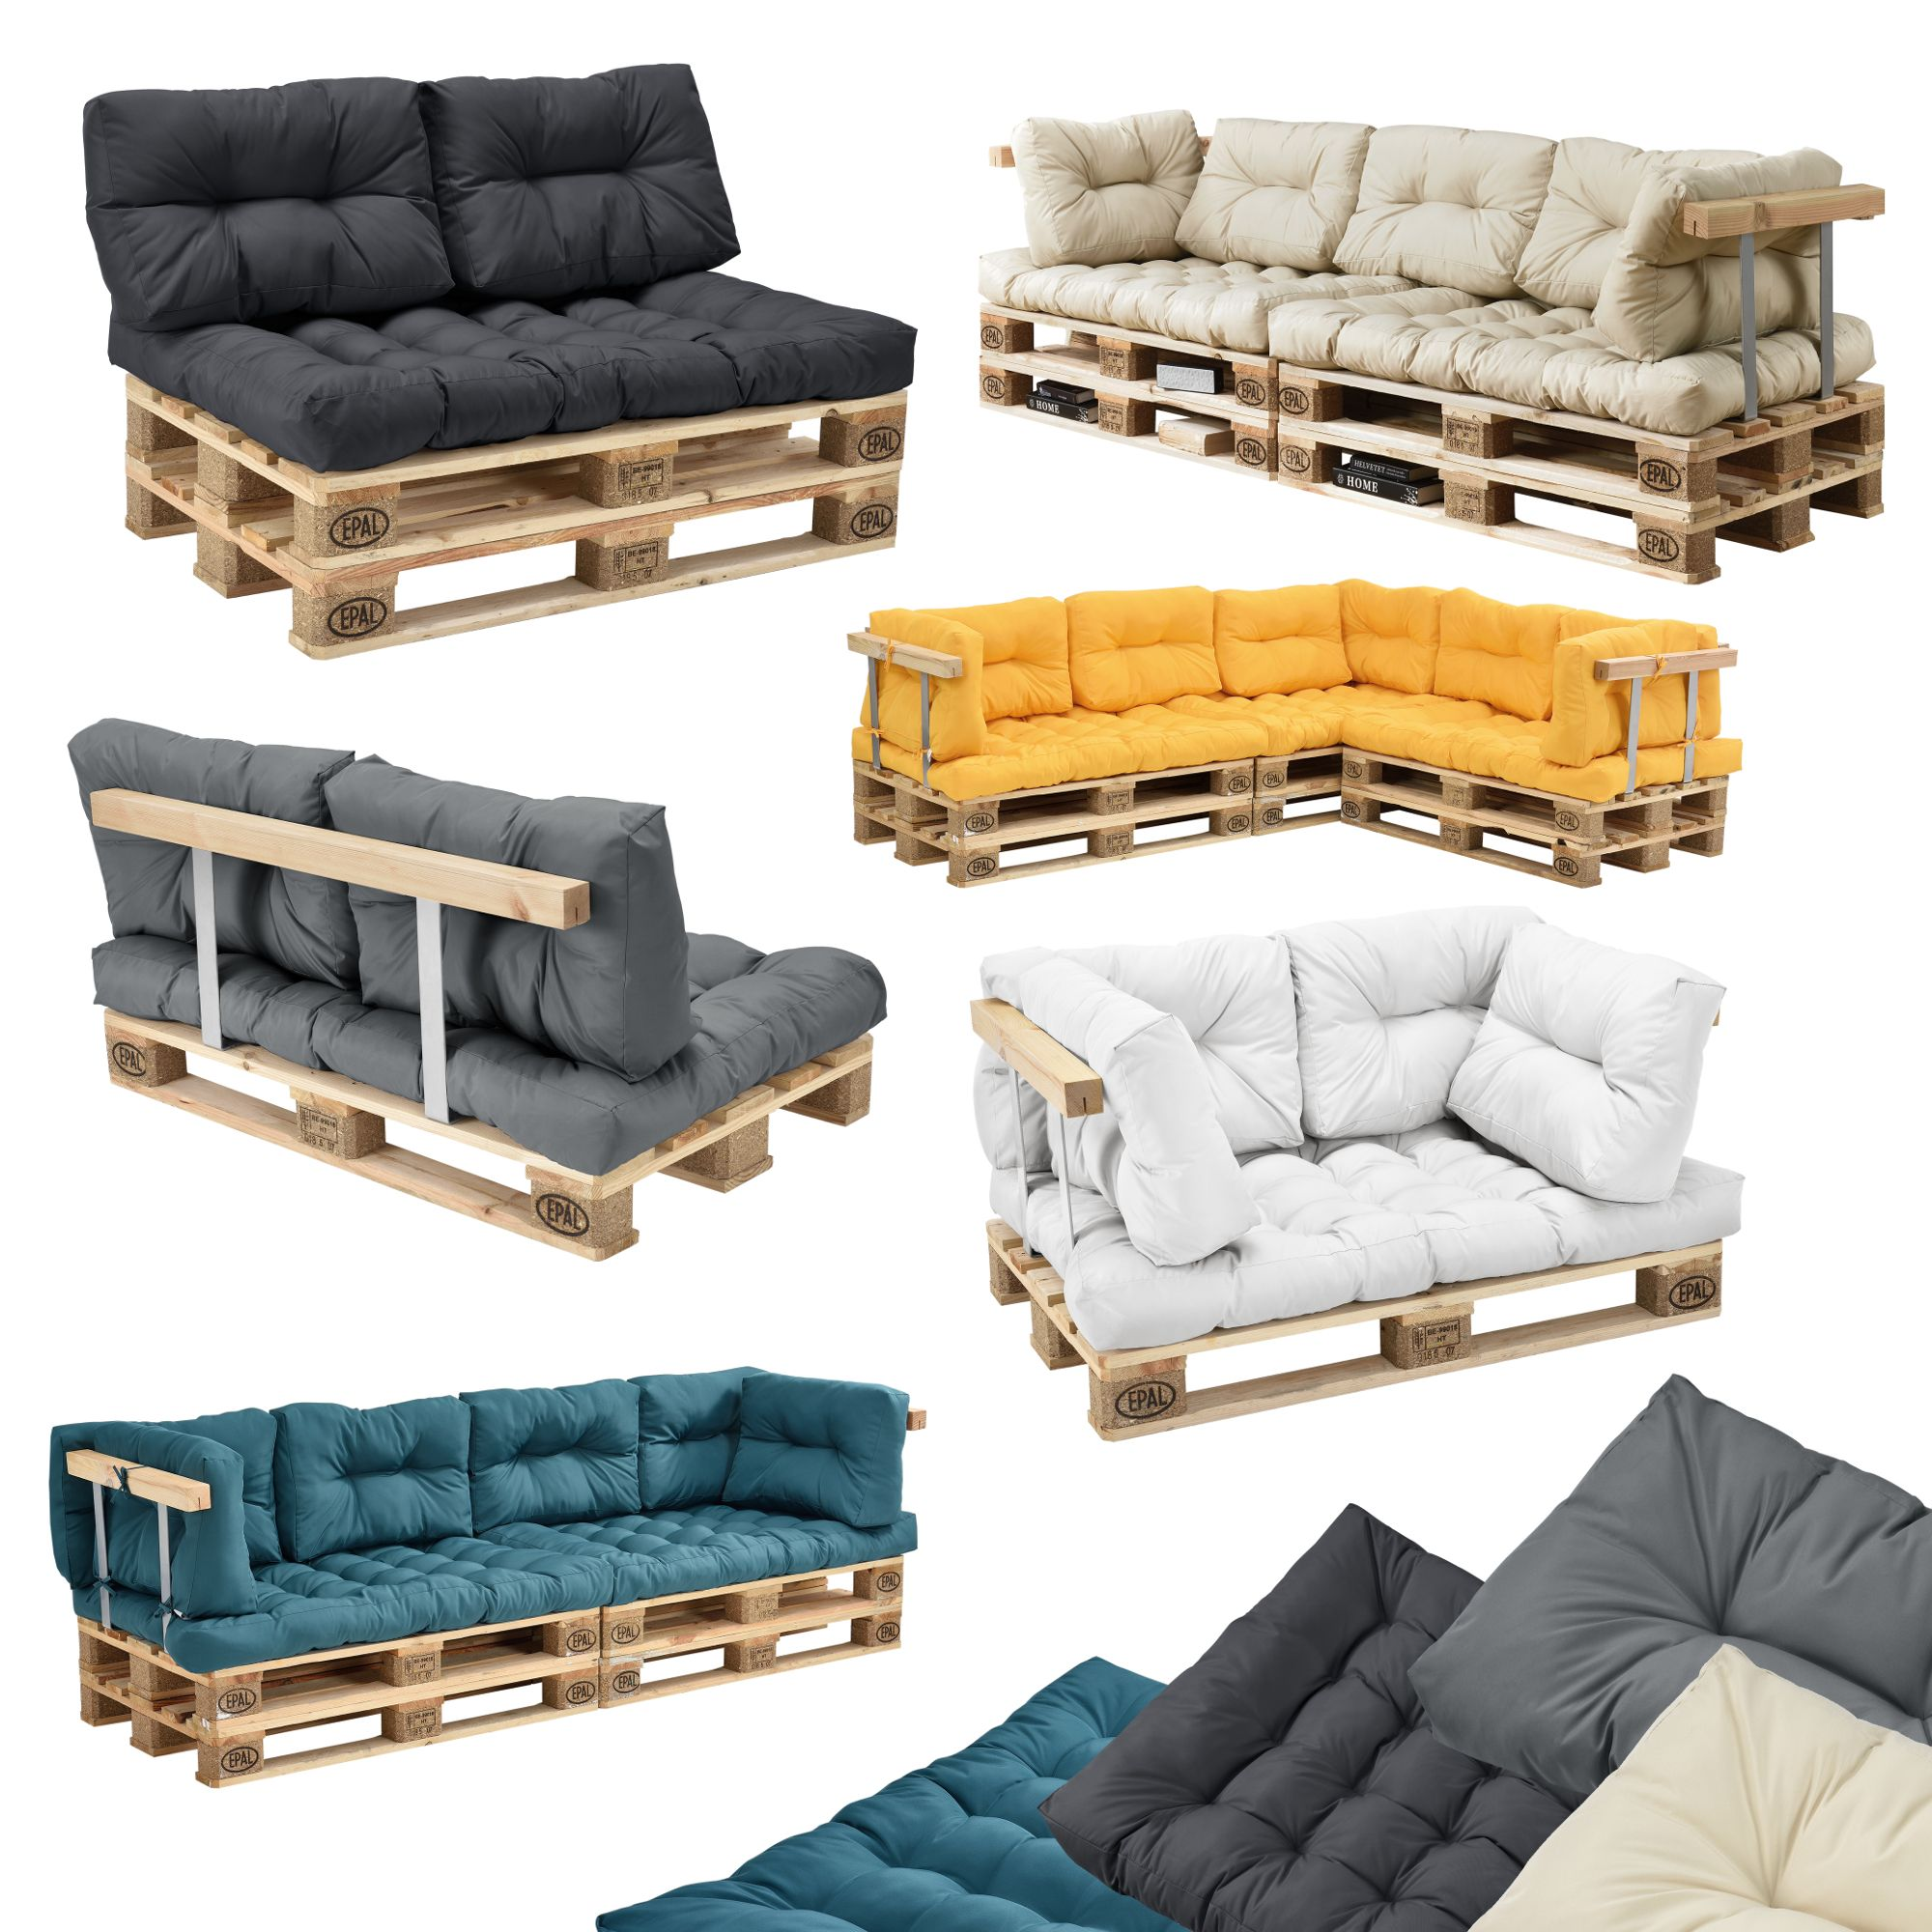 Pin By Елена Виноградова On Pallet Furniture Diy Pallet Sofa Pallet Patio Furniture Pallet Cushions